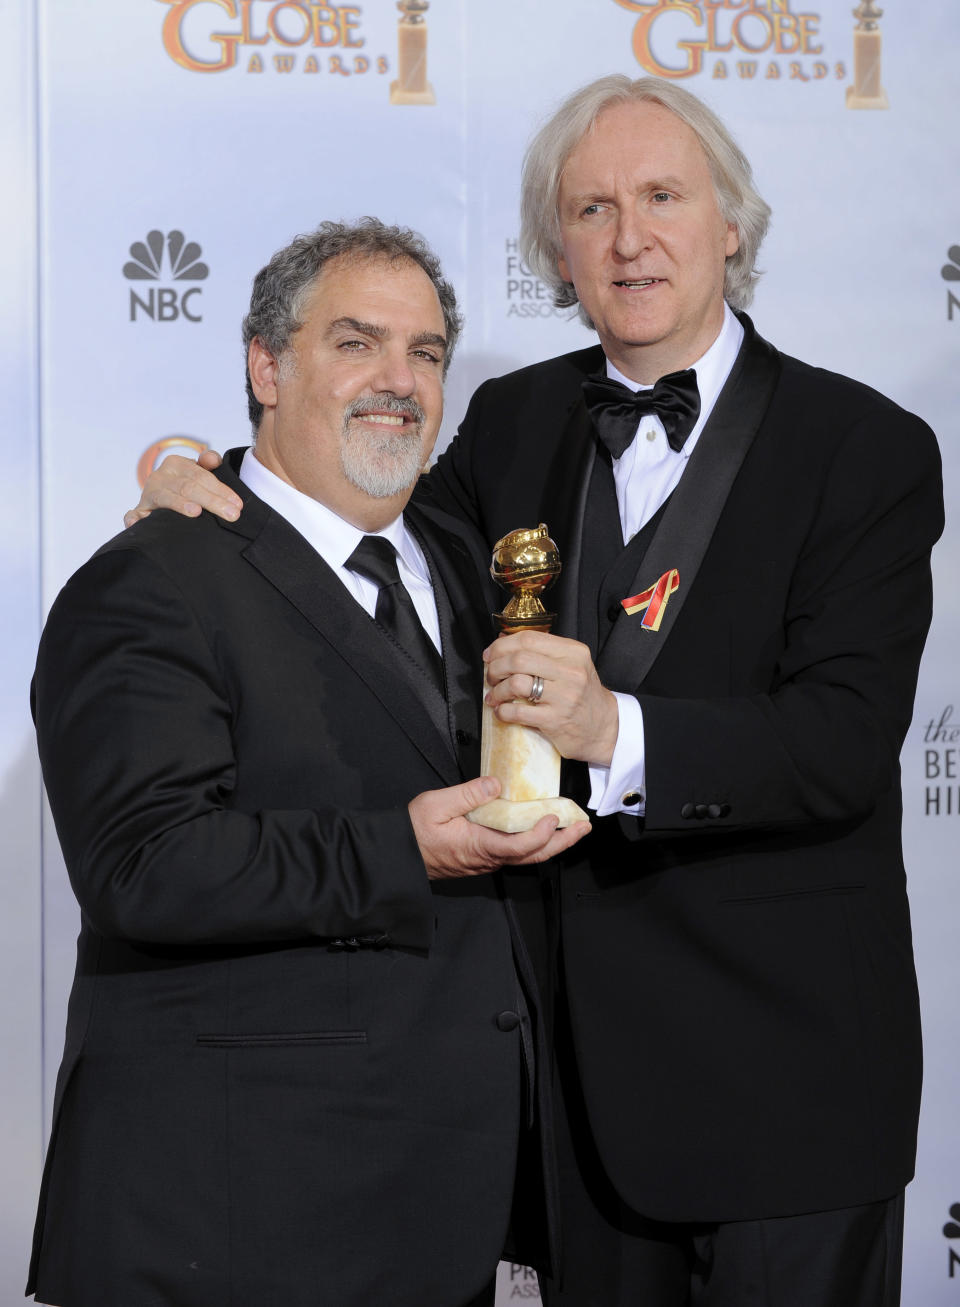 """Producer Jon Landau, left, and director James Cameron pose with the award for best motion picture drama for """"Avatar"""" backstage at the 67th Annual Golden Globe Awards on Sunday, Jan. 17, 2010, in Beverly Hills, Calif. (AP Photo/Mark J. Terrill)"""